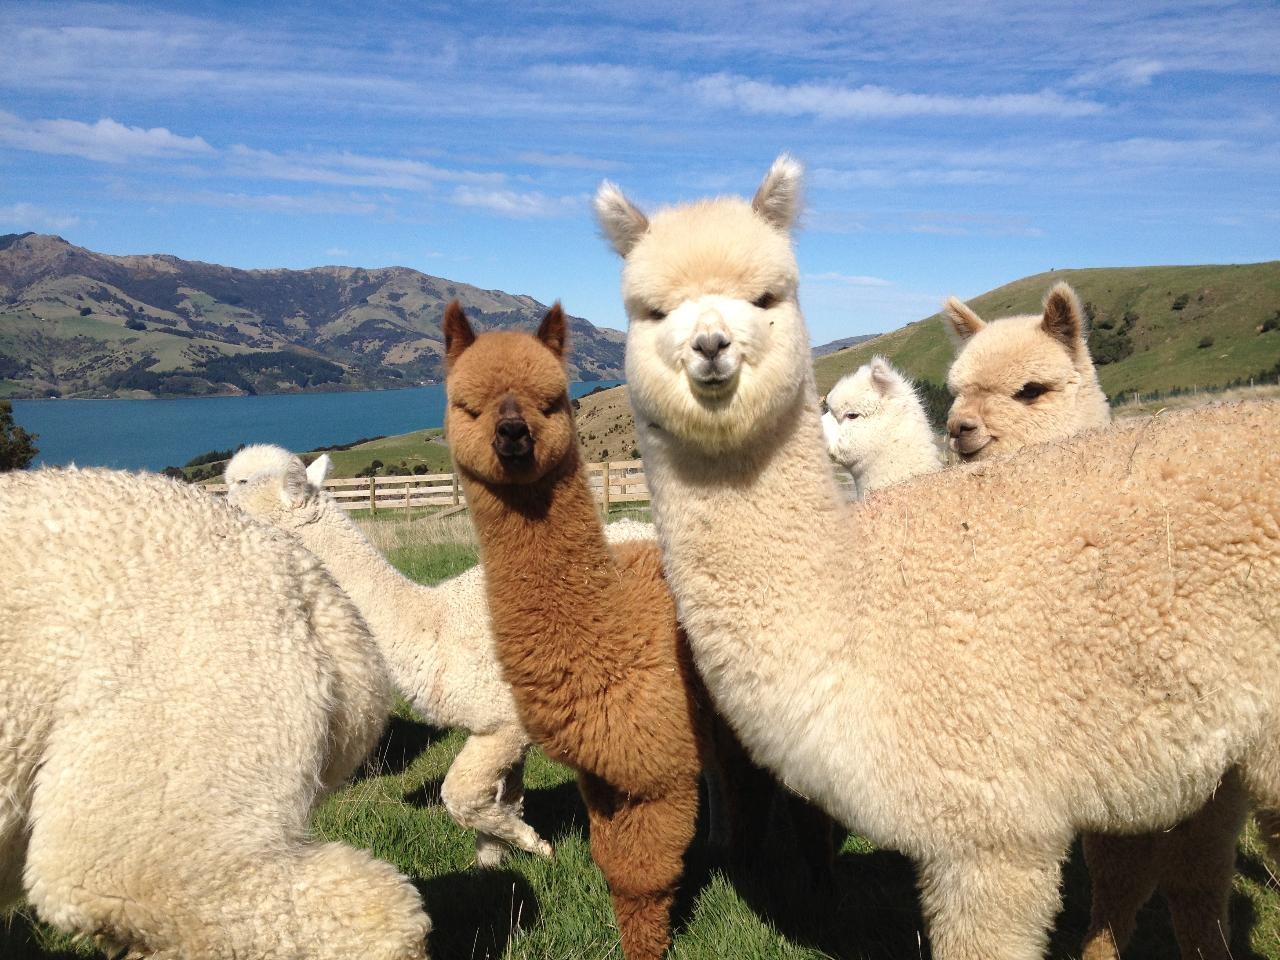 *Akaroa - Shamarra Alpacas Farm Tour PLUS a 3 hour local sightseeing highlights tour with a local included, then return to Akaroa for 2 to 5 people